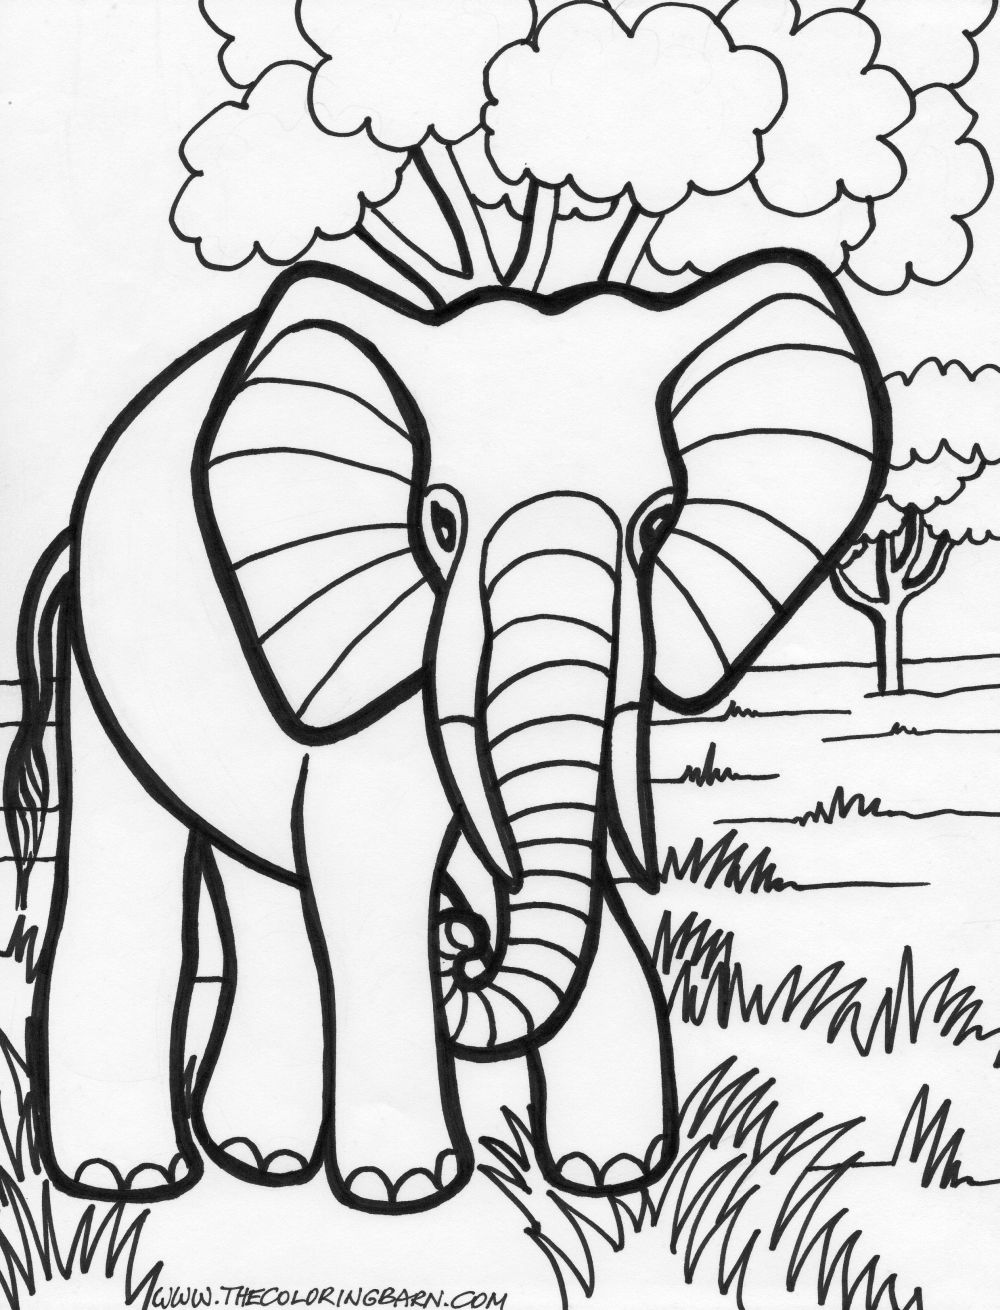 elephant coloring pages free elephant coloring pages coloring pages elephant